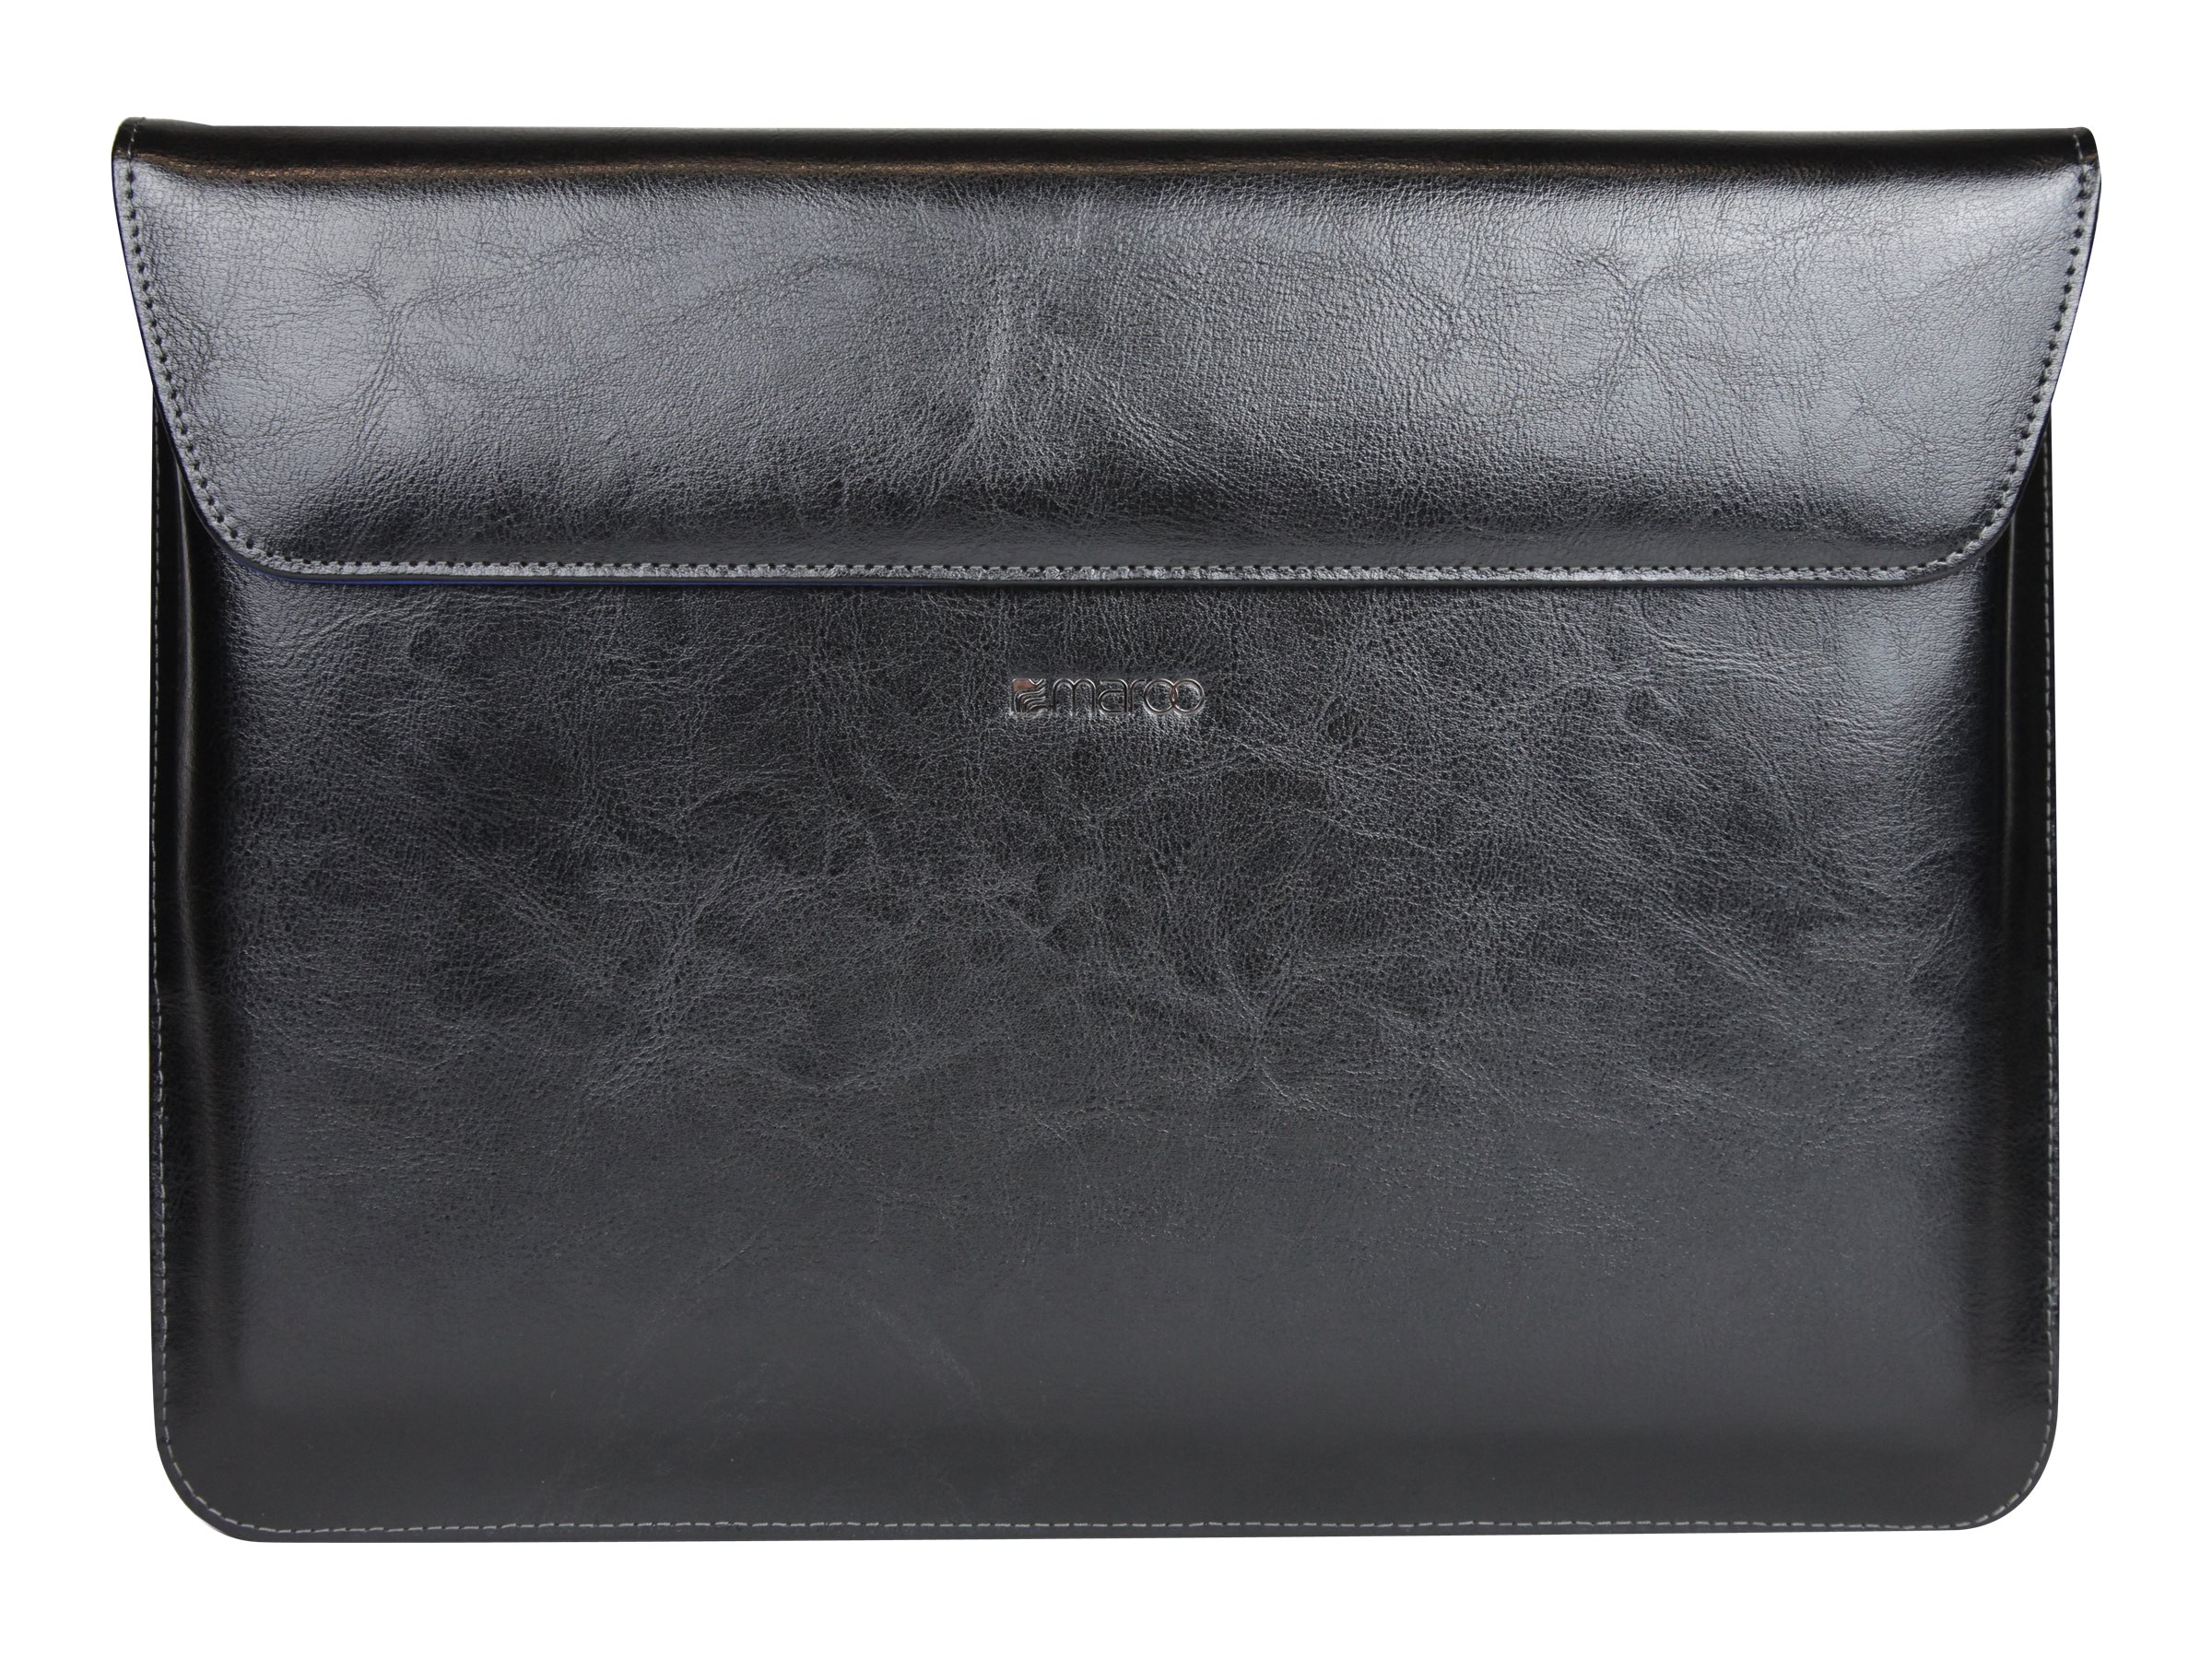 Cyber Acoustics Maroo Surface Book Leather Sleeve, Magnetic Fold, Marbled Black